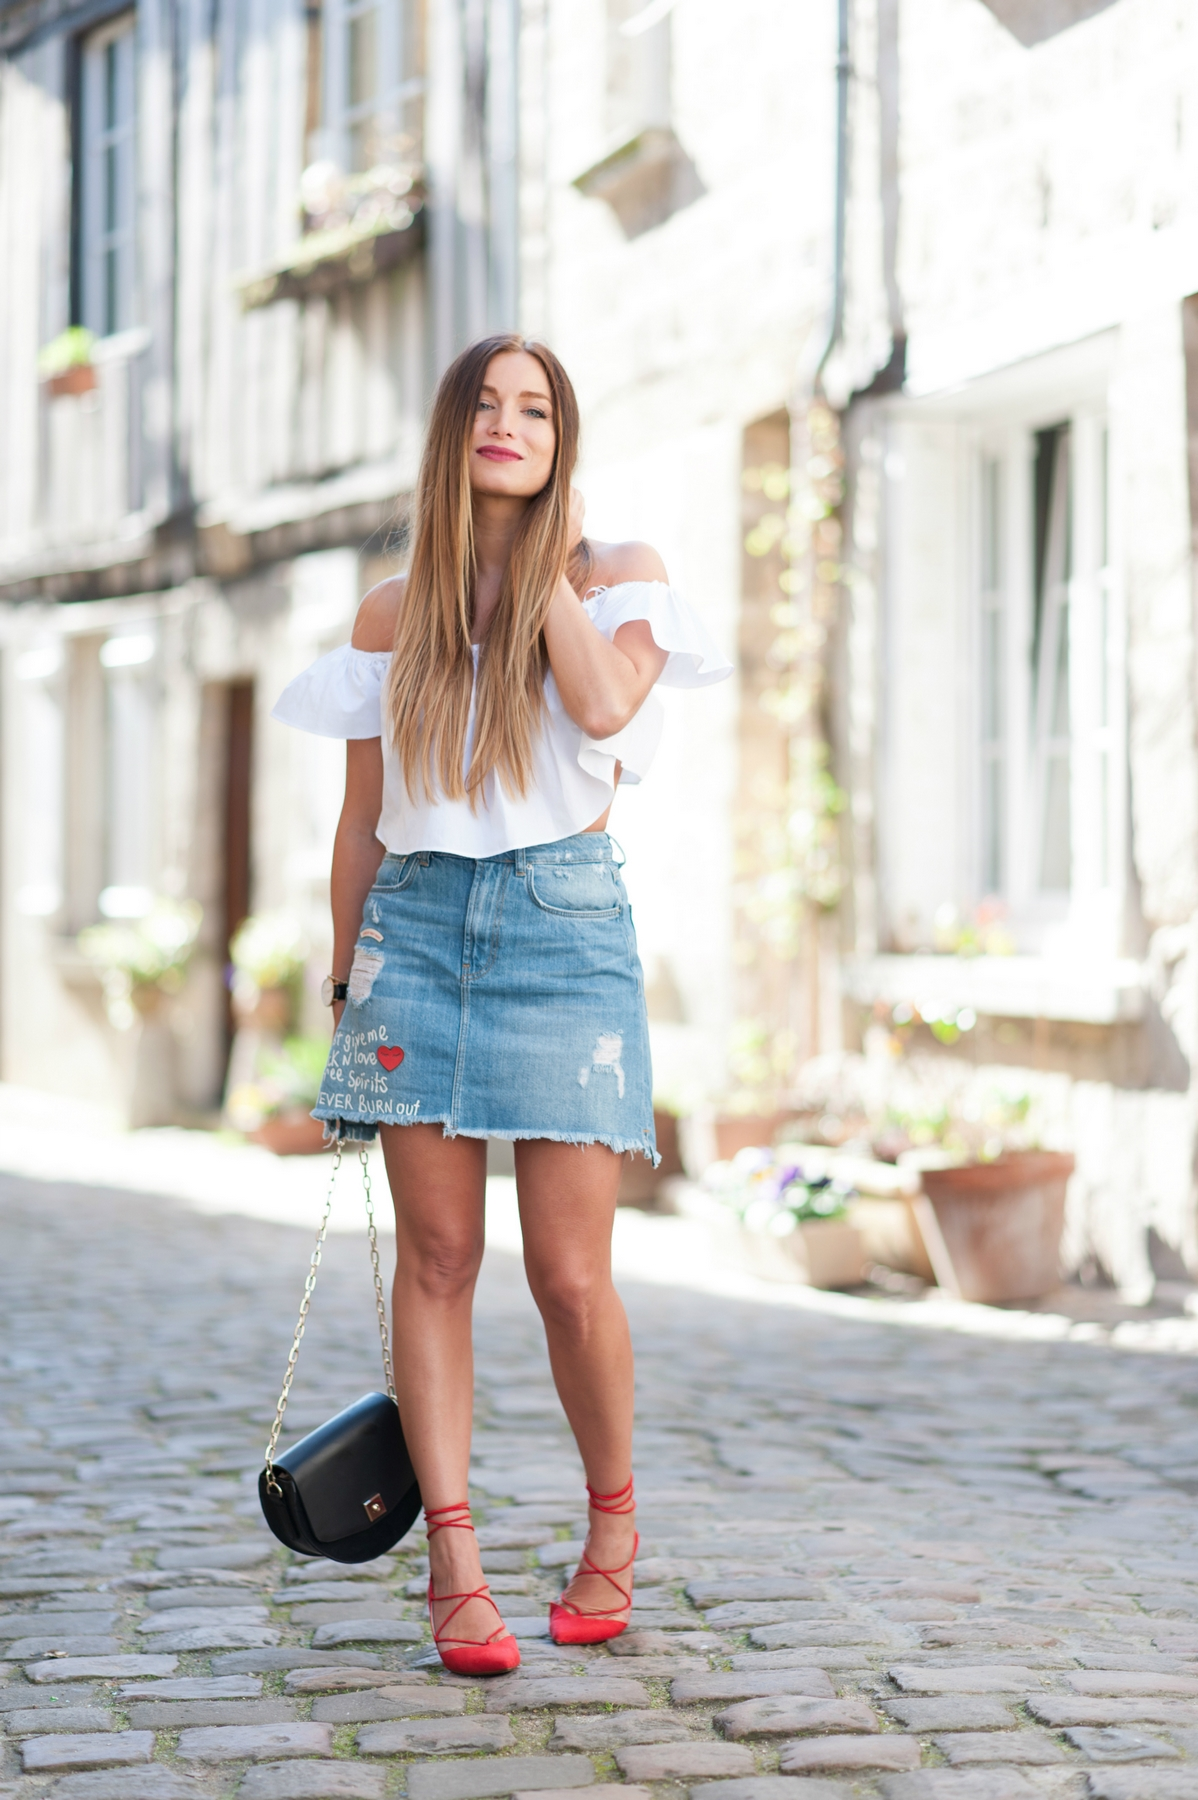 spring outfit denim skirt and white bardot top